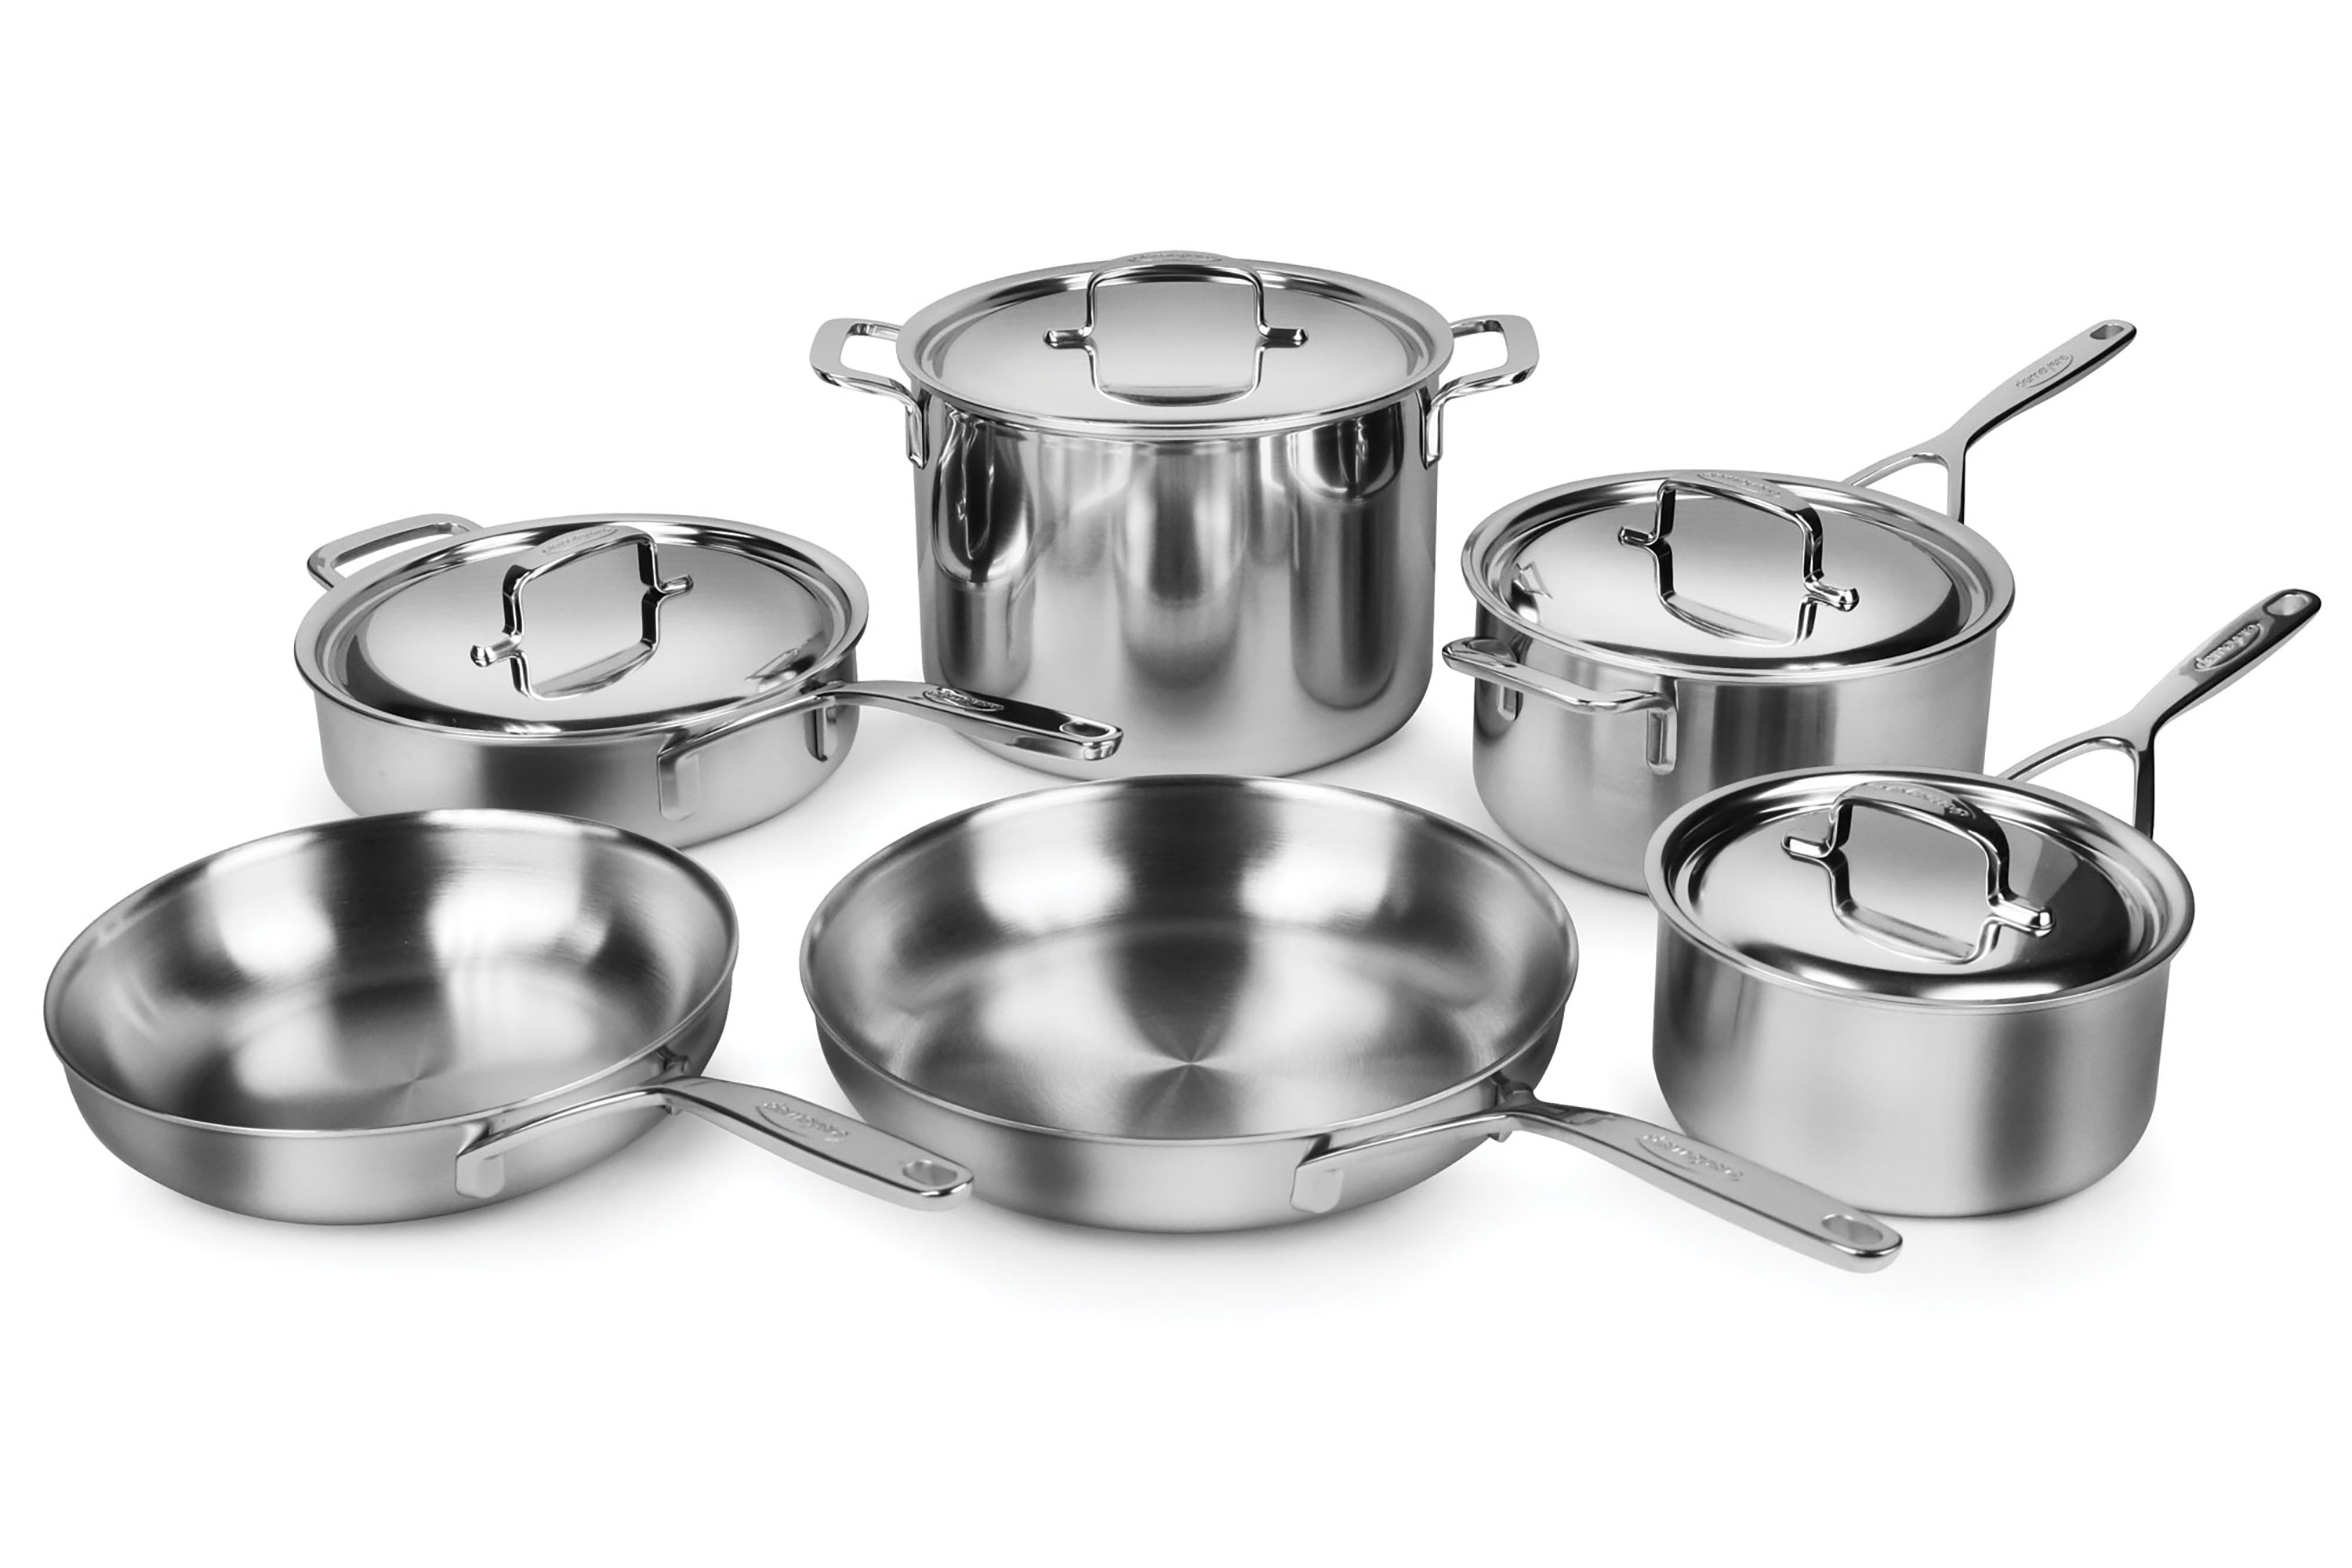 Myer Cutlery Set Demeyere Cookware Set 5 Ply Plus Stainless Steel 10 Piece